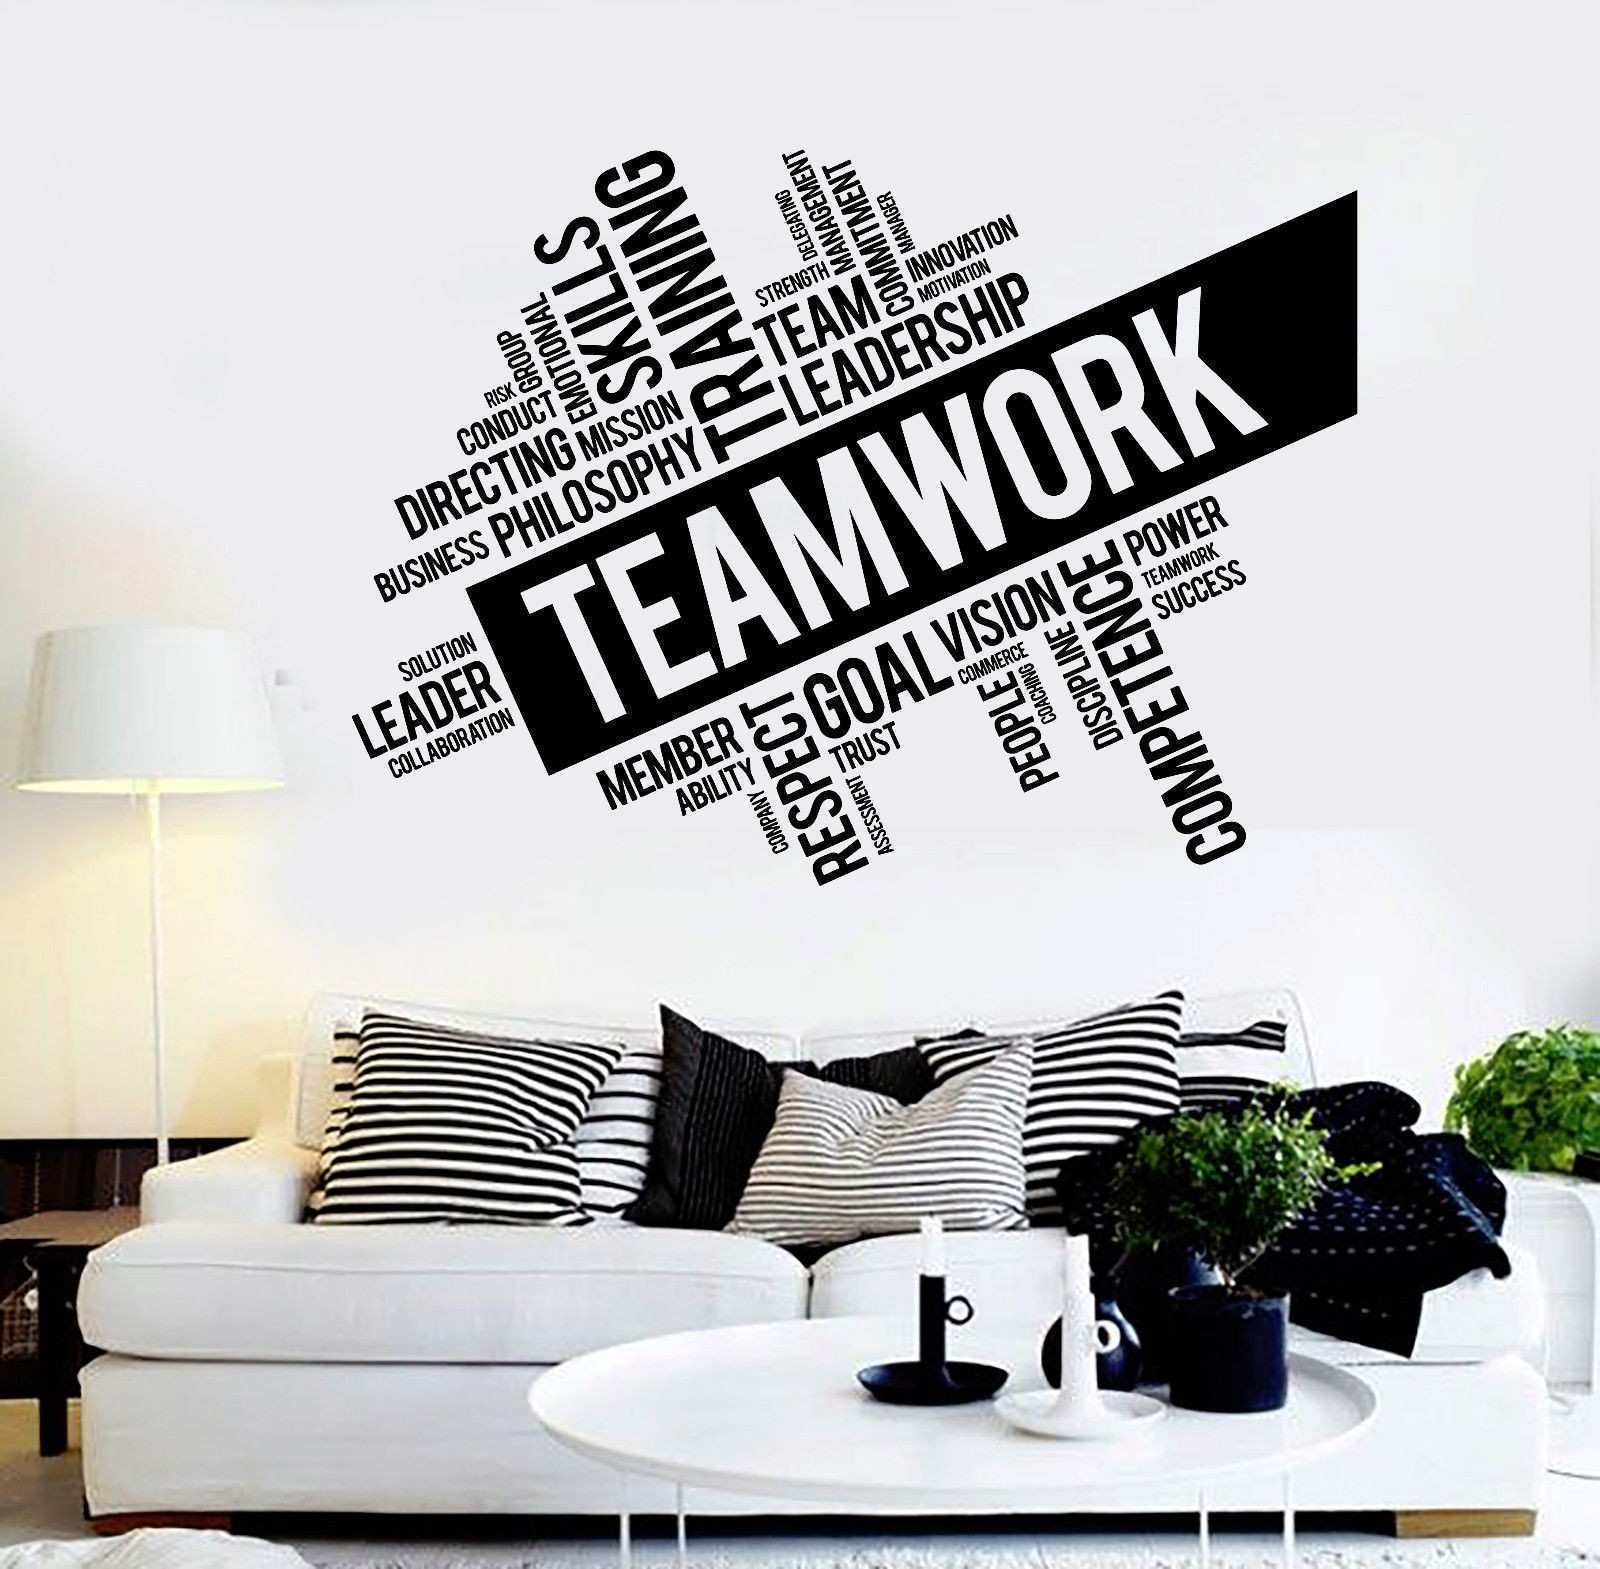 Vinyl Wall Decal Inspirational Teamwork Success fice wall Decor